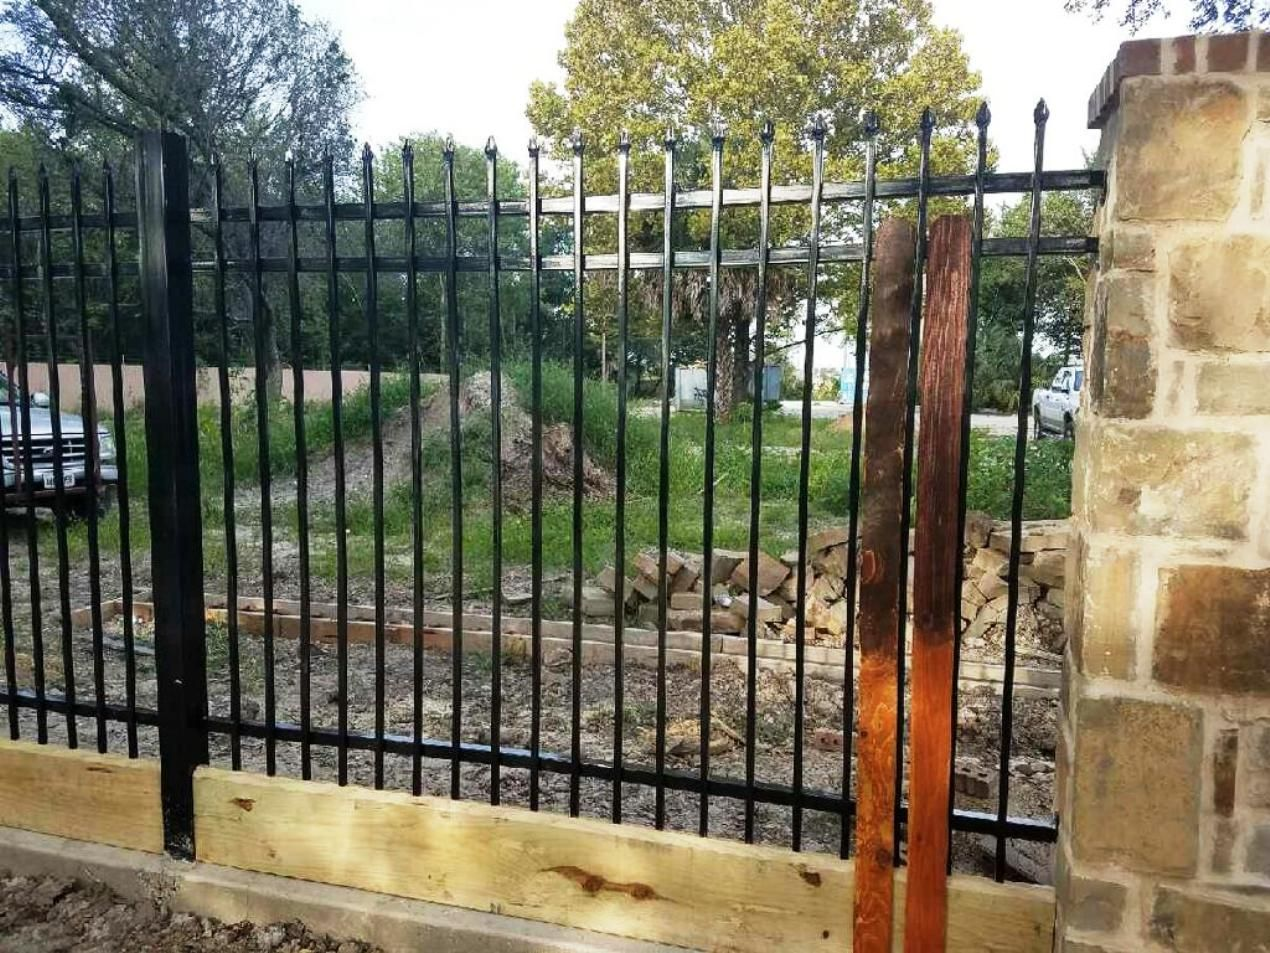 Custom Iron Fence With Wood Panel Slates For Added Privacy And Beautiful Stone Columns Expert Installation For Iron Fence Iron Fence Gate Wrought Iron Fences